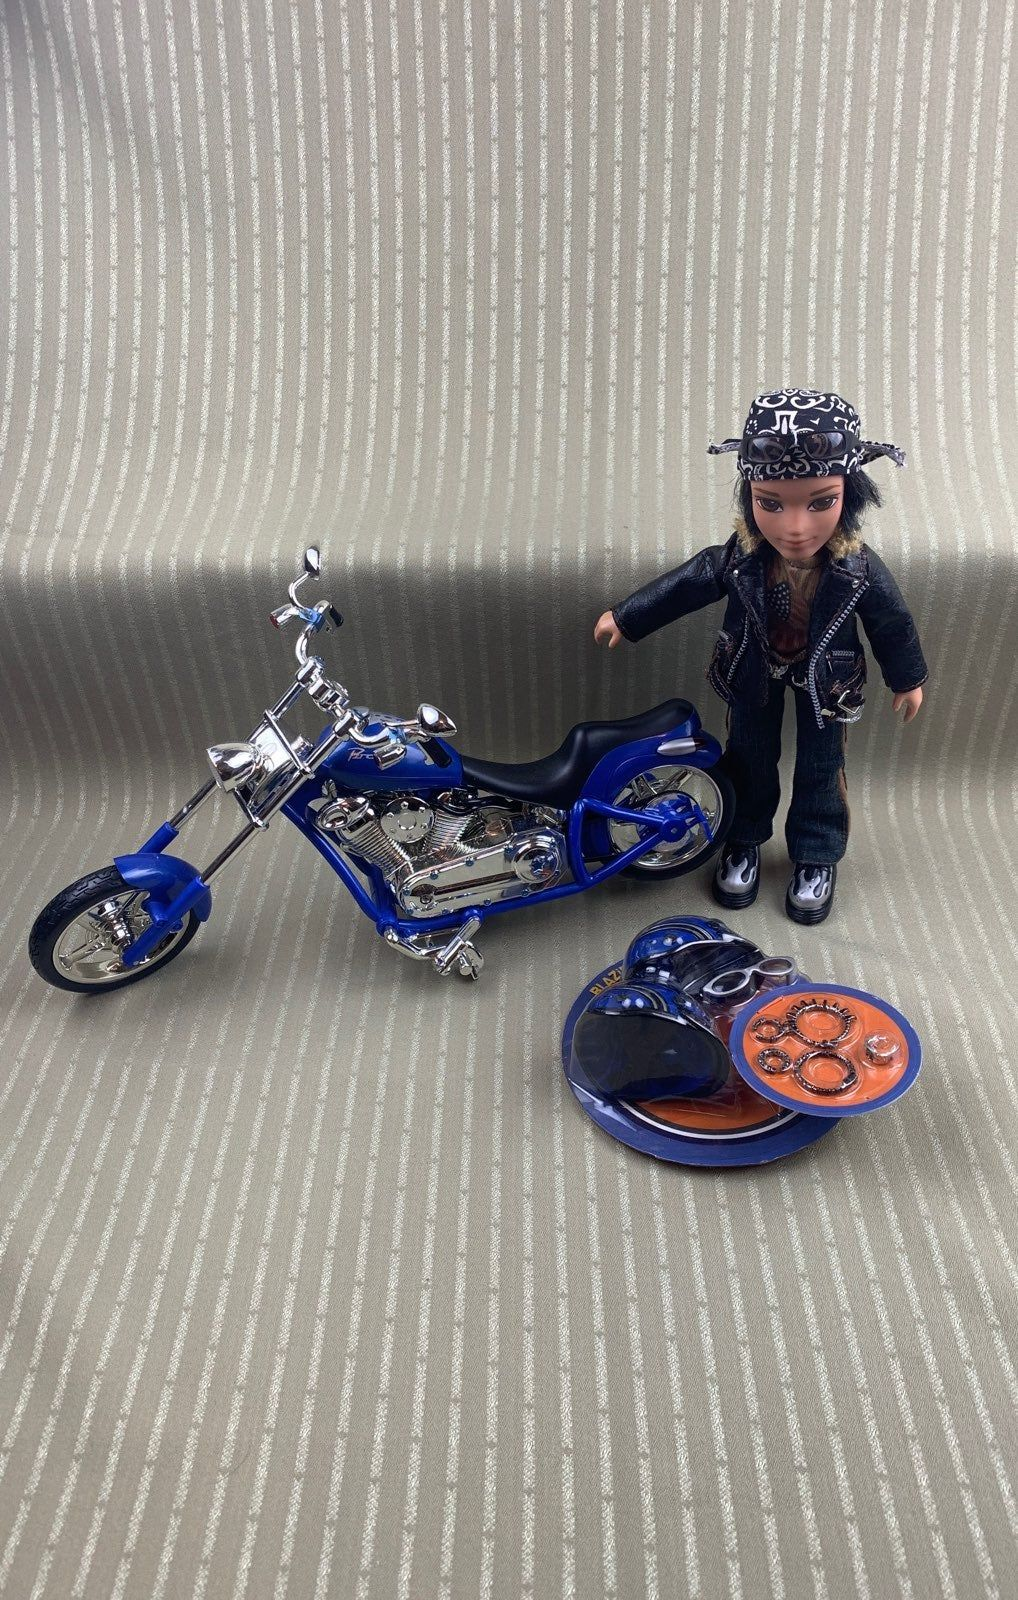 Includes The Doll His Accessories And Bike I Believe All 3 Were Taken Out Of Packaging And Stored Right Away Grea Bratz Girls Bratz Characters Fashion Dolls